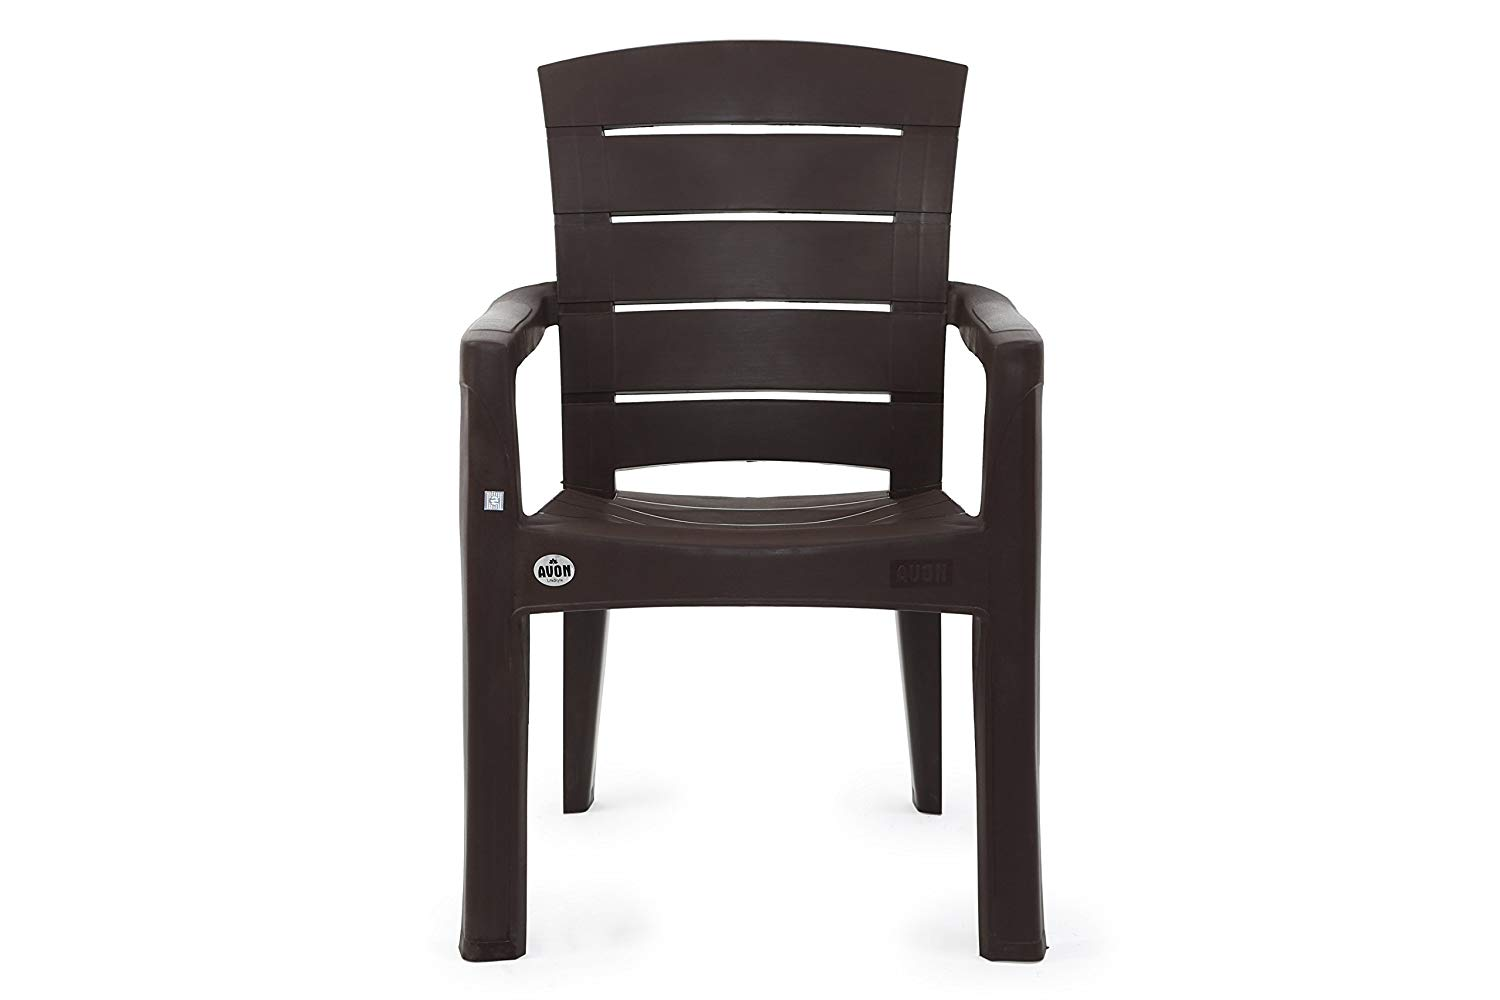 LINO PLASTIC CHAIR | Stackable Plastic Chair | Cafe Chair ...